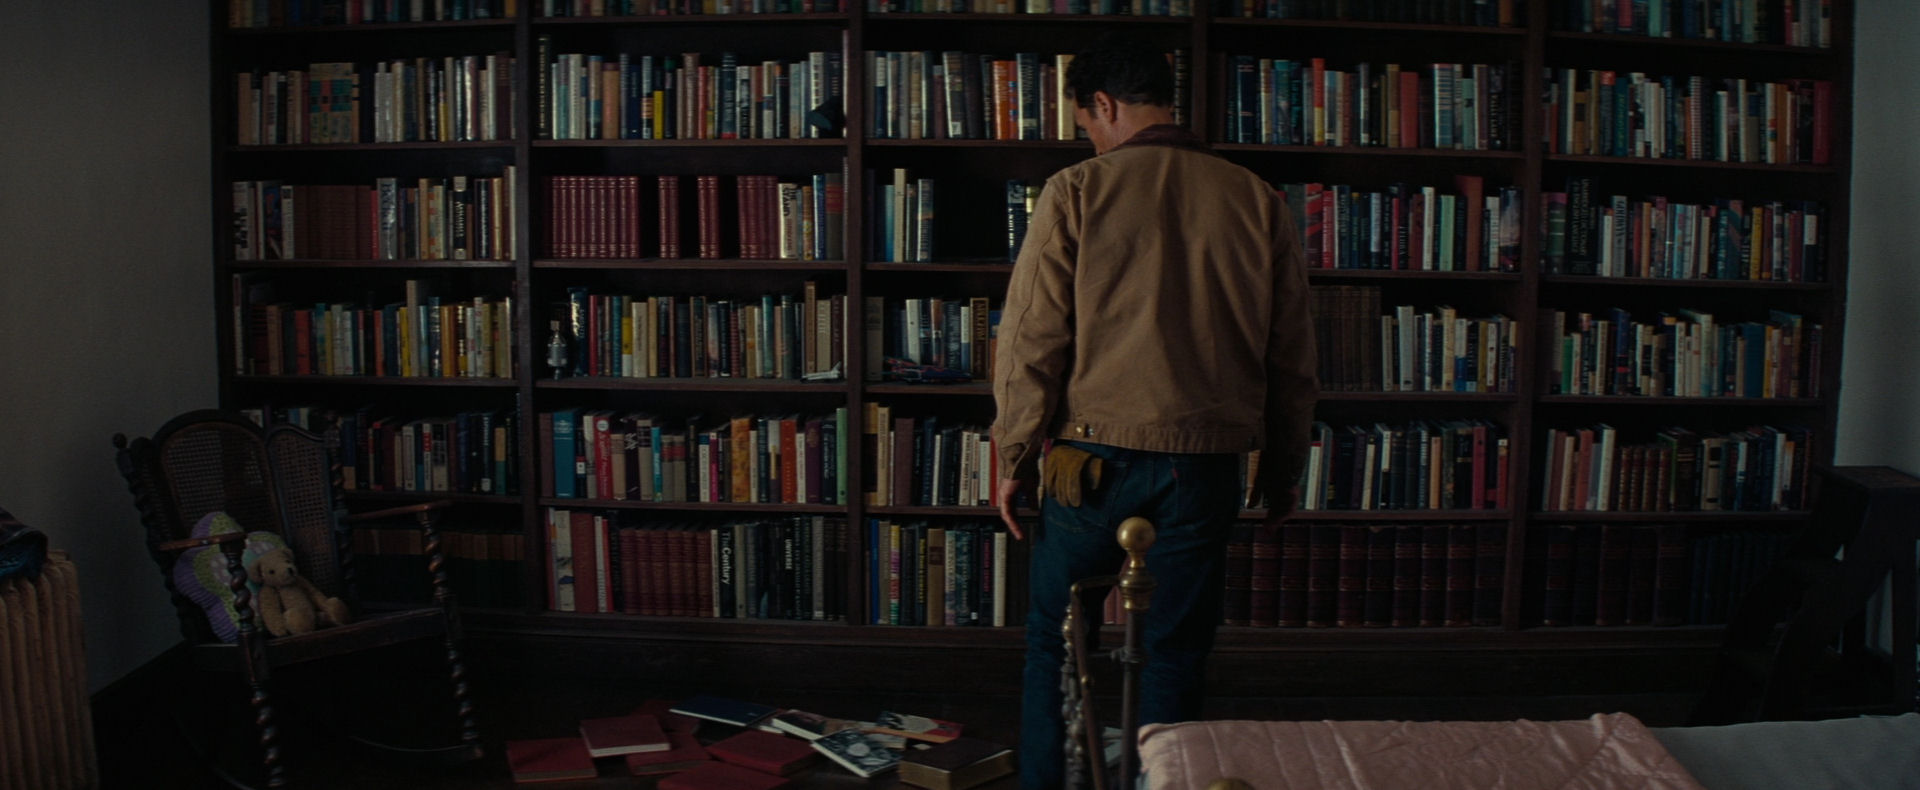 When The Ghost Pushed Books From Shelf In Early Stages Of Film Pitch Black Voids Arose Rows Almost As If A Foreshadowing